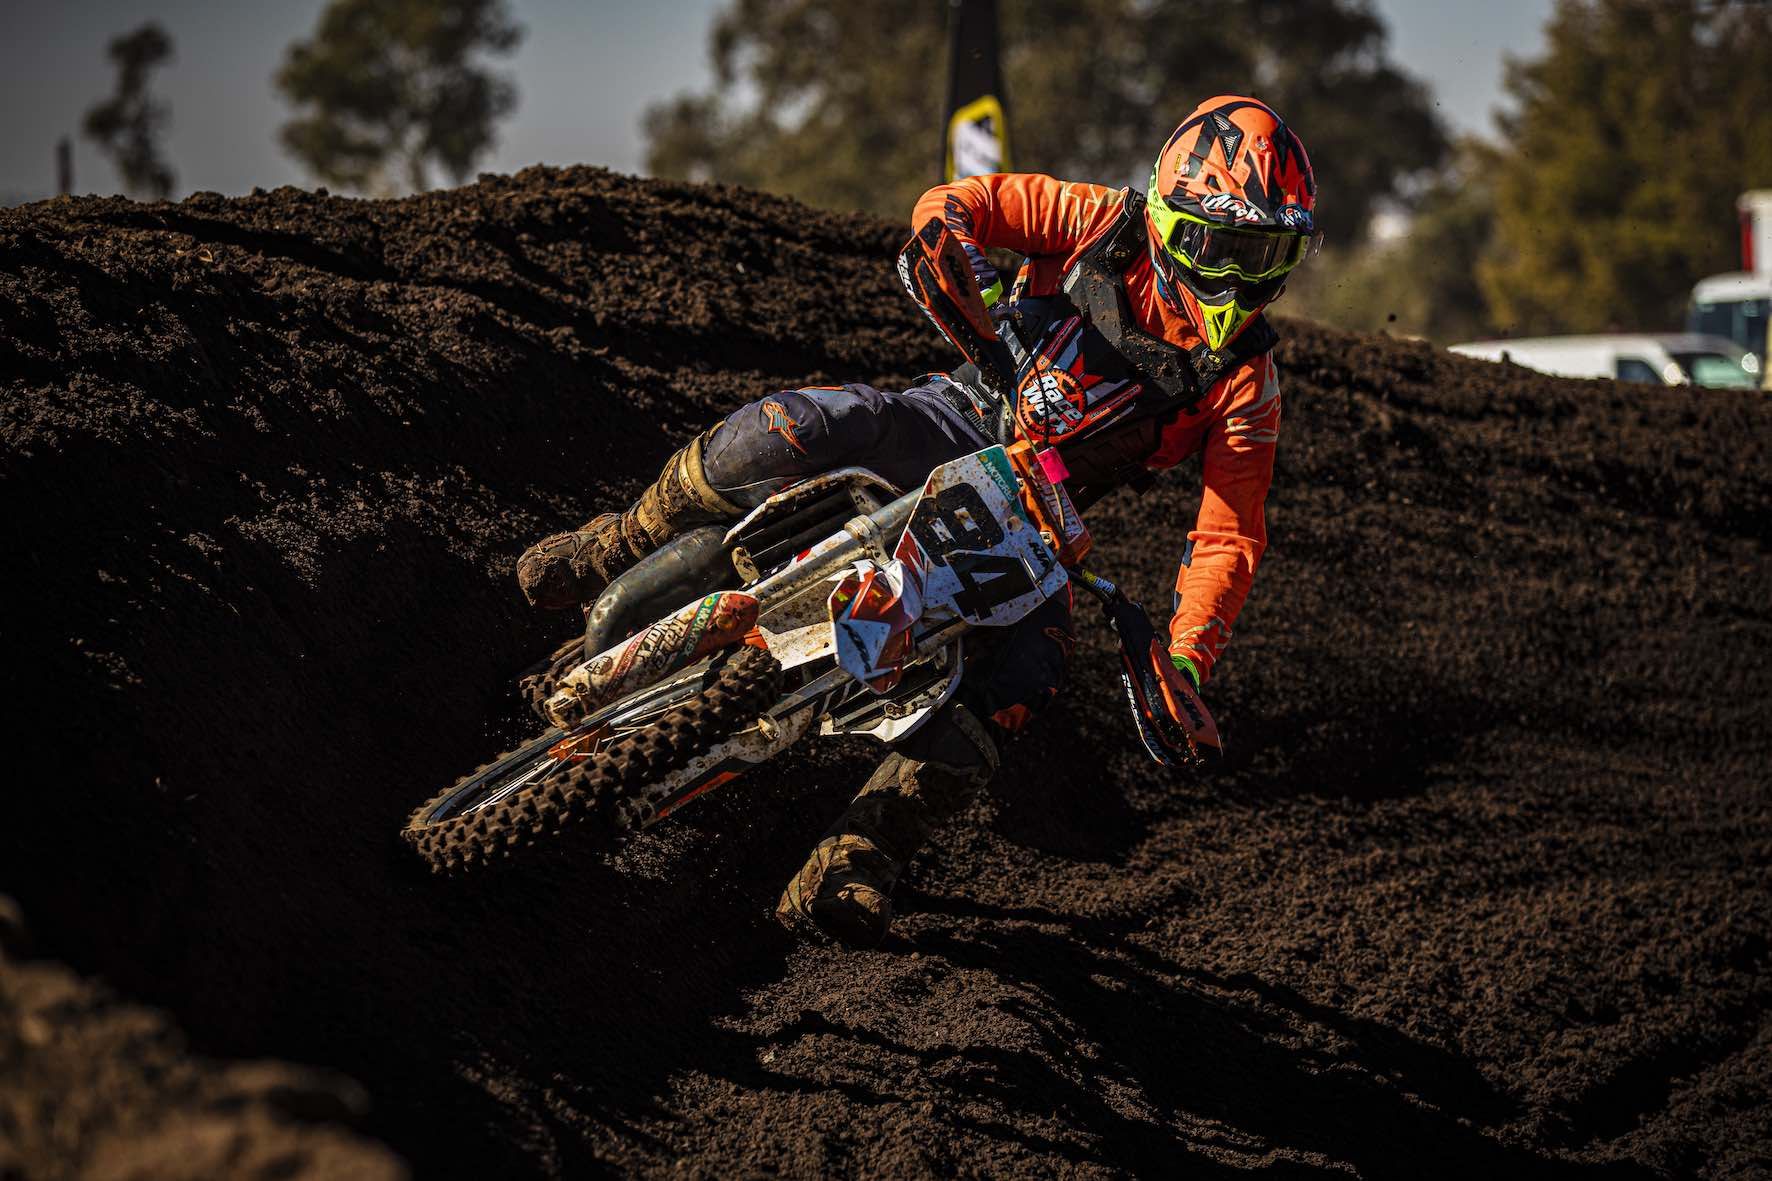 Leonard du Toit racing Round 4 of the 2019 SA Motocross Nationals at Dirt Bronco